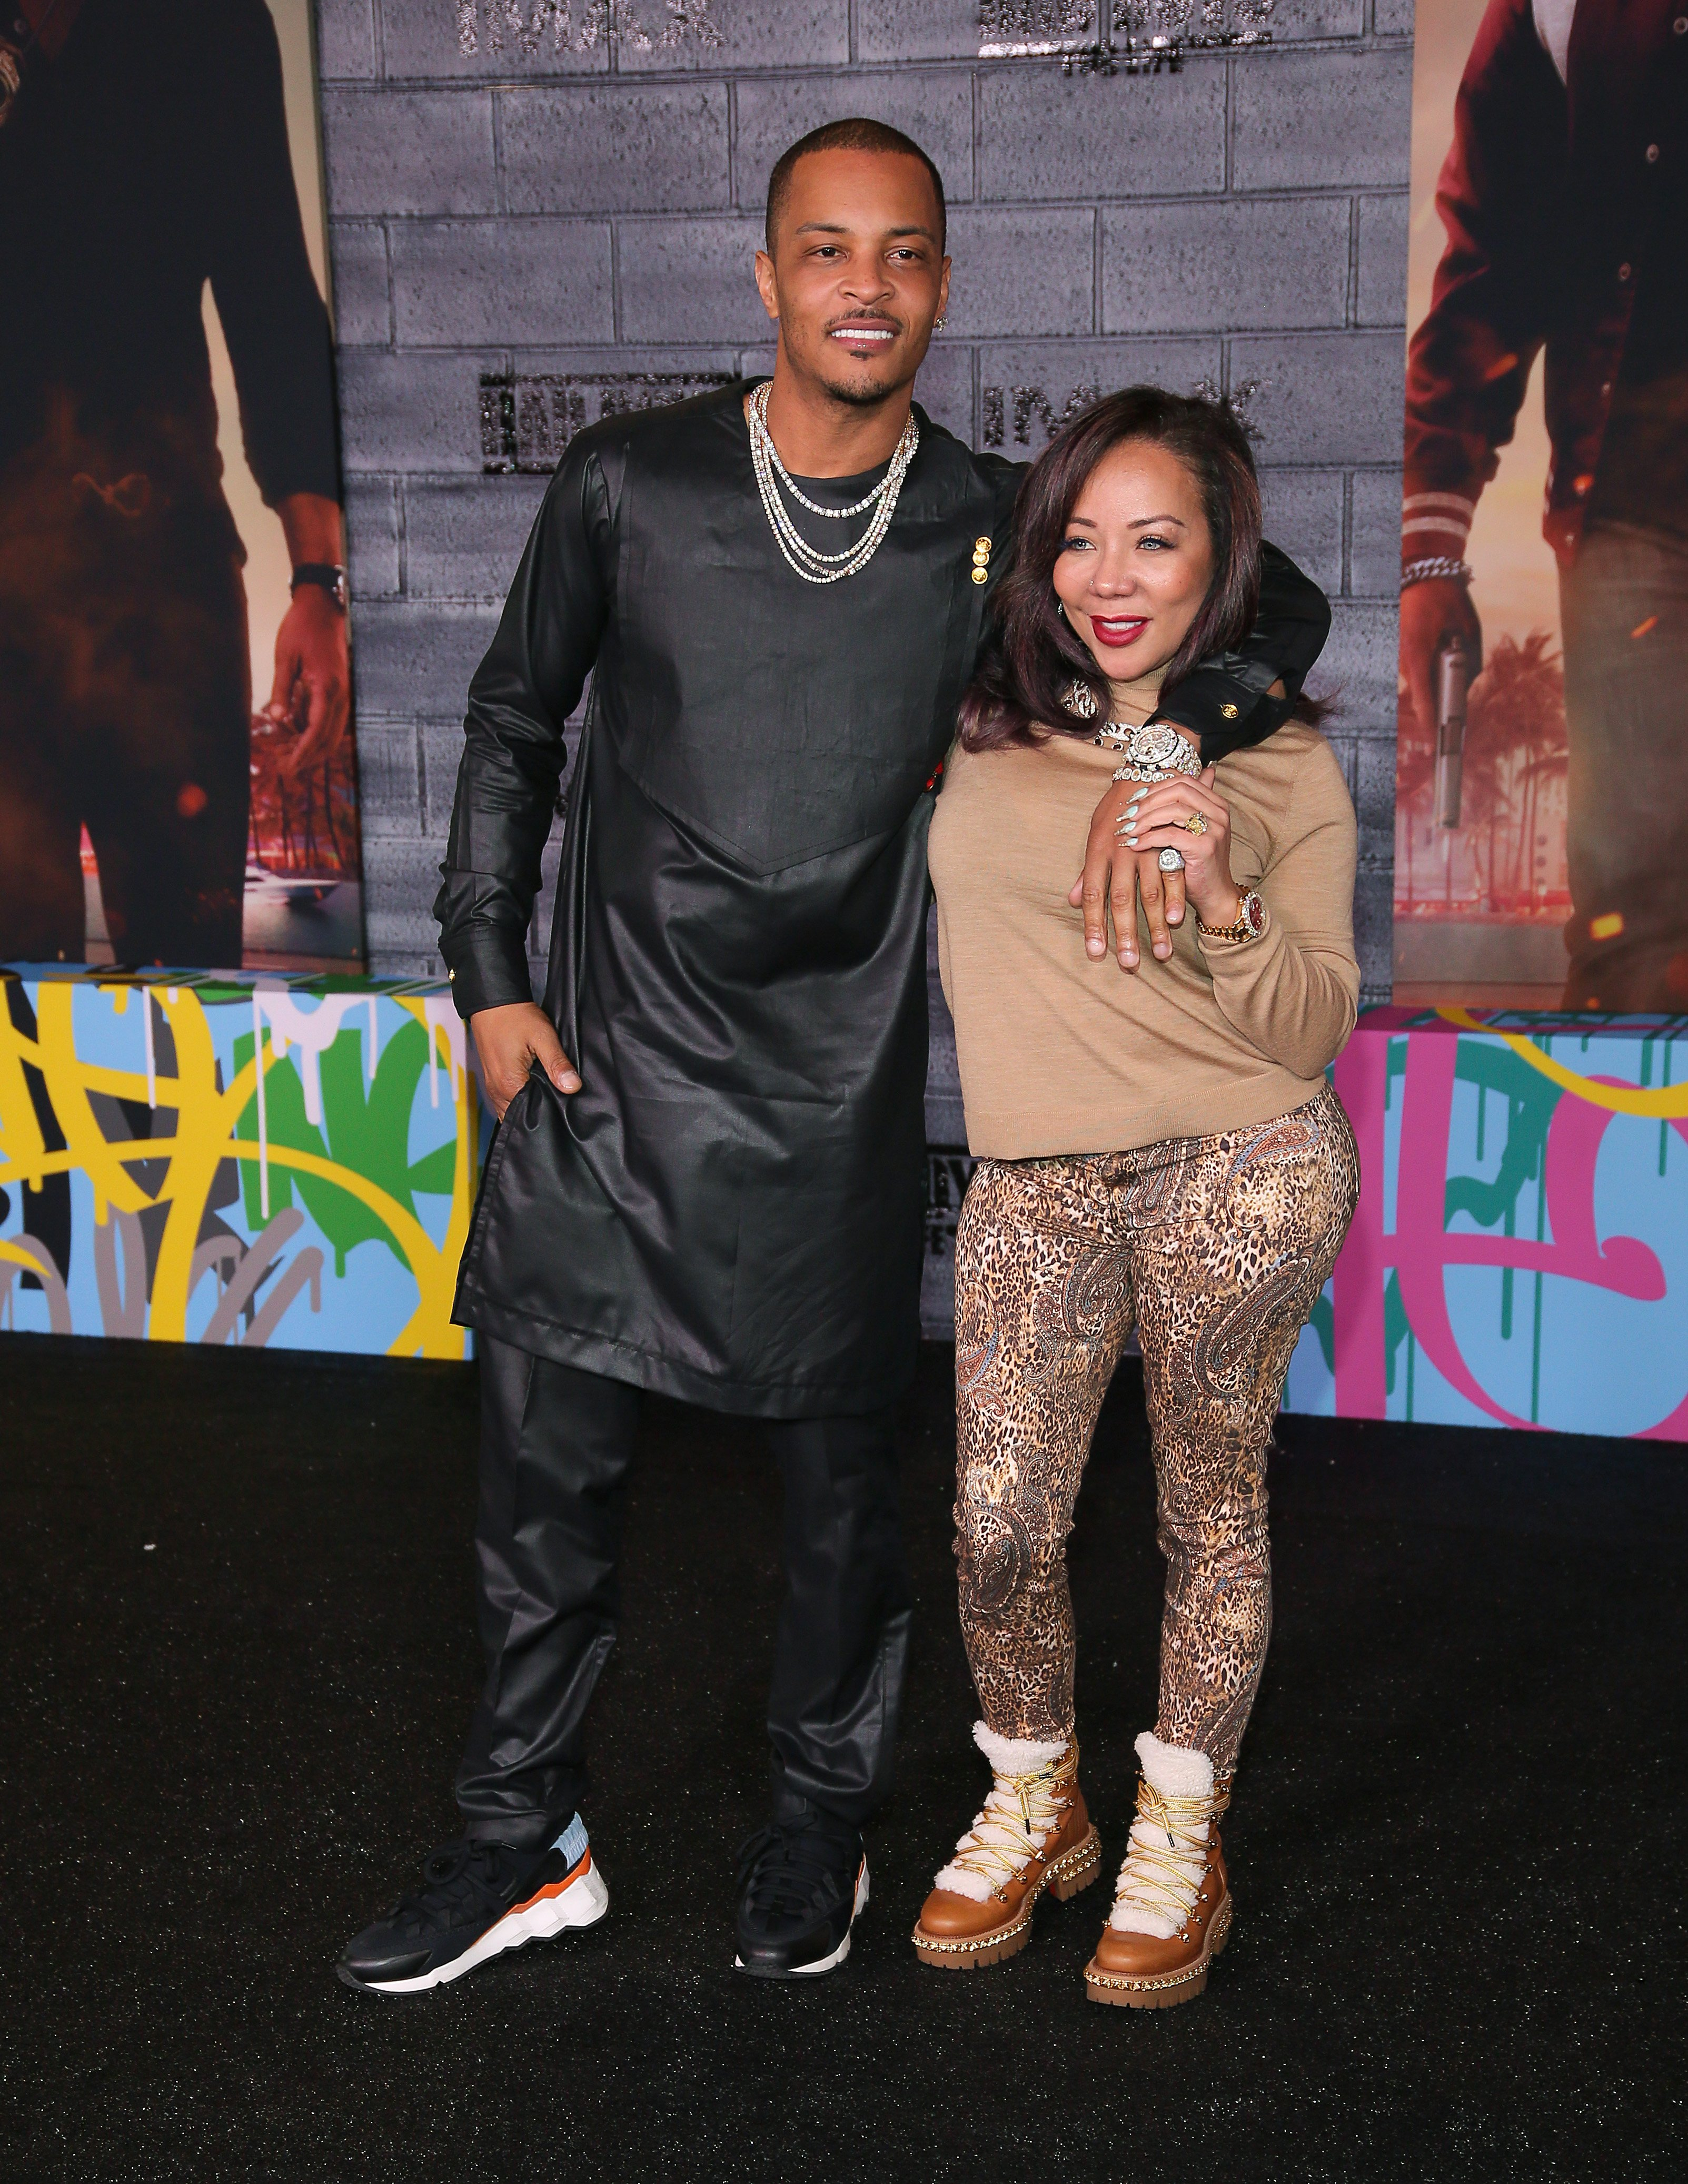 """T.I. and Tameka """"Tiny"""" Harris at the world premiere of """"Bad Boys for Life"""" on January 14, 2020 in Hollywood, California. 